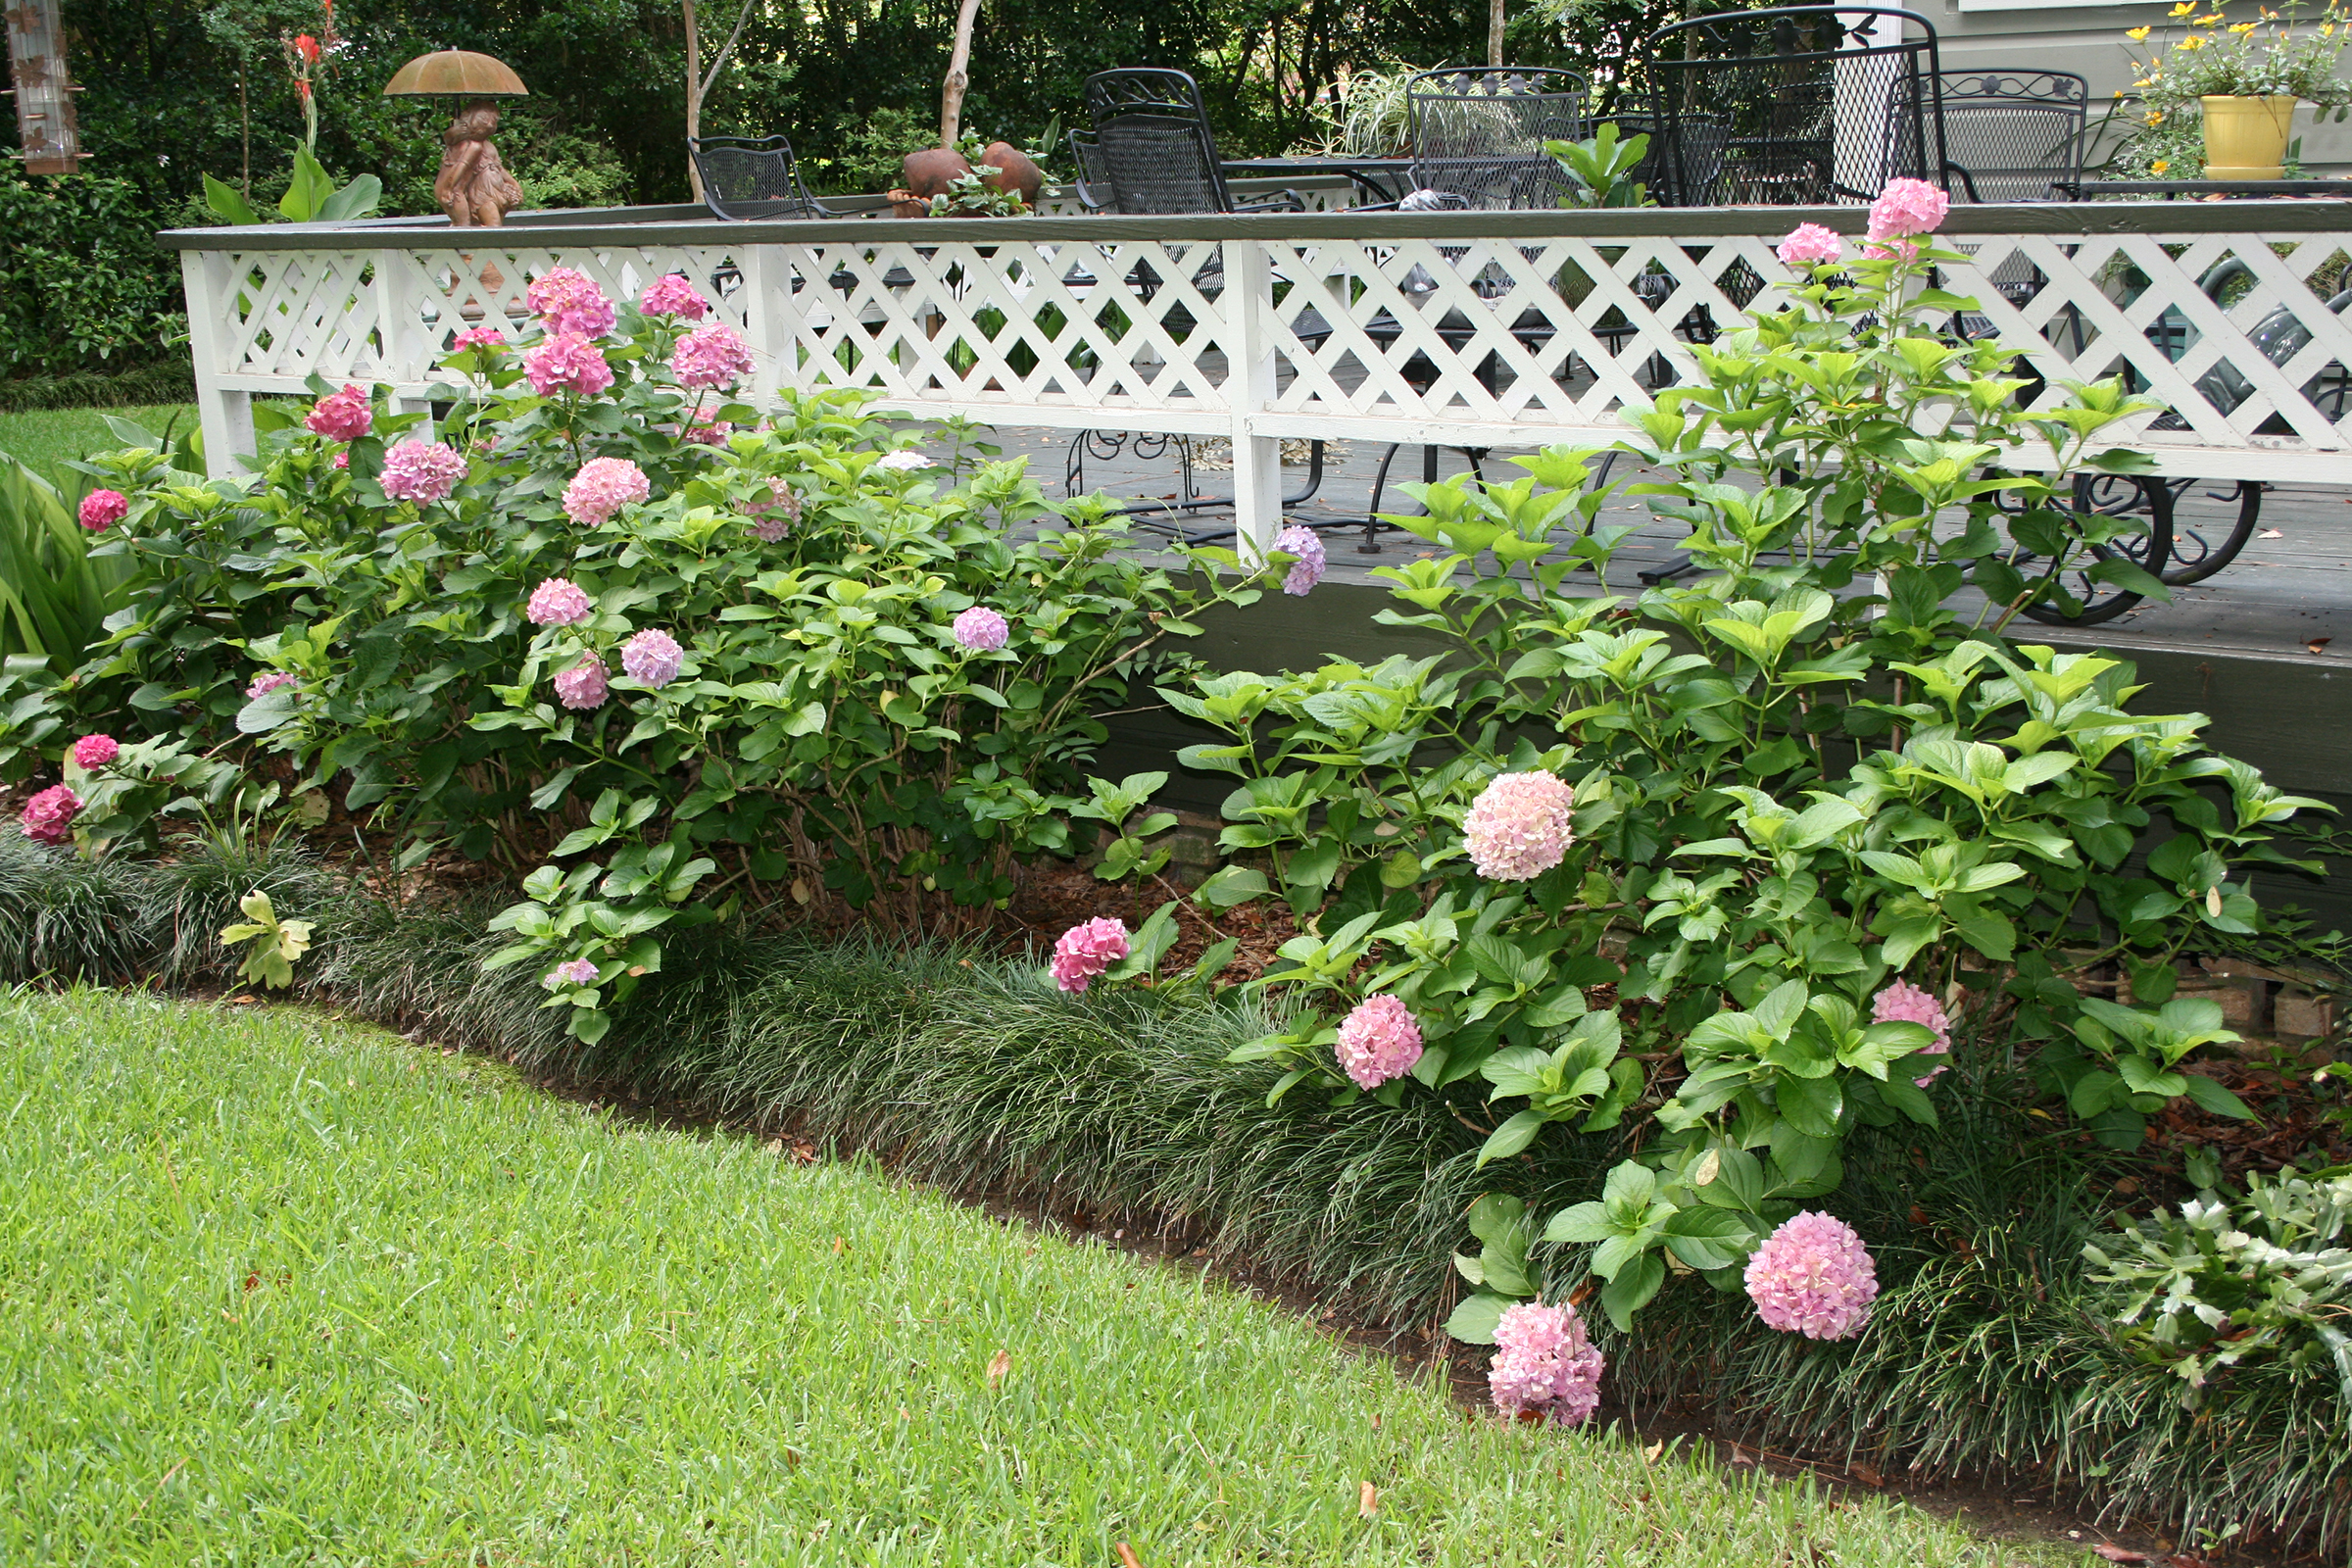 Example of a raised landscape bed that uses liriope as the border.